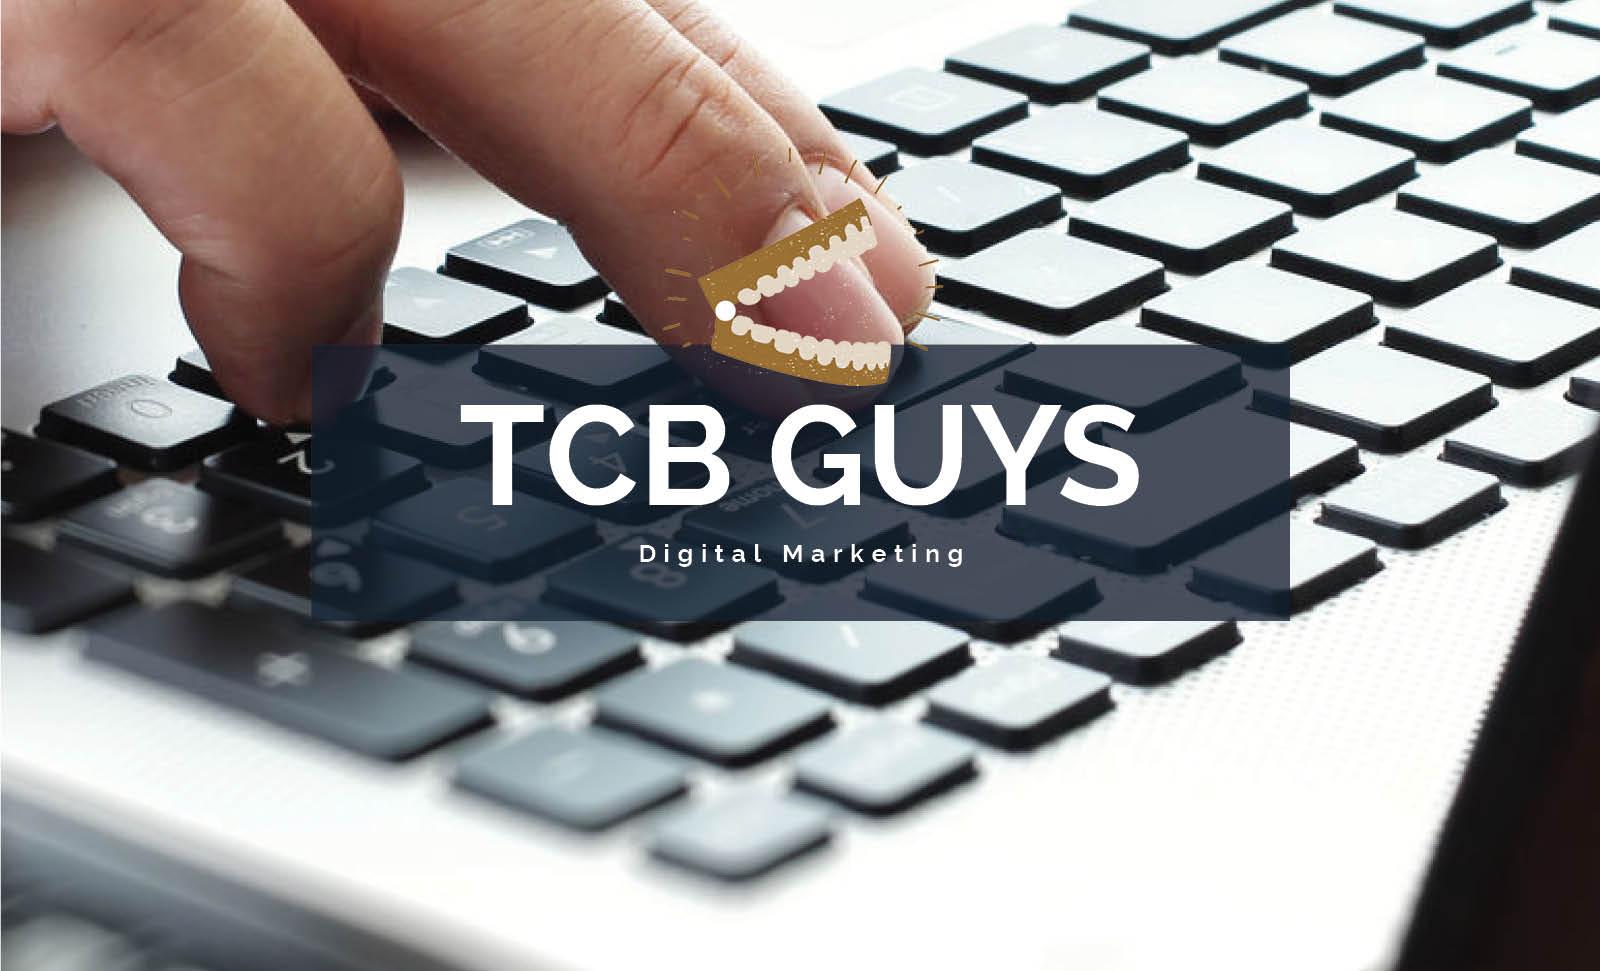 TCB Guys Digital Marketing